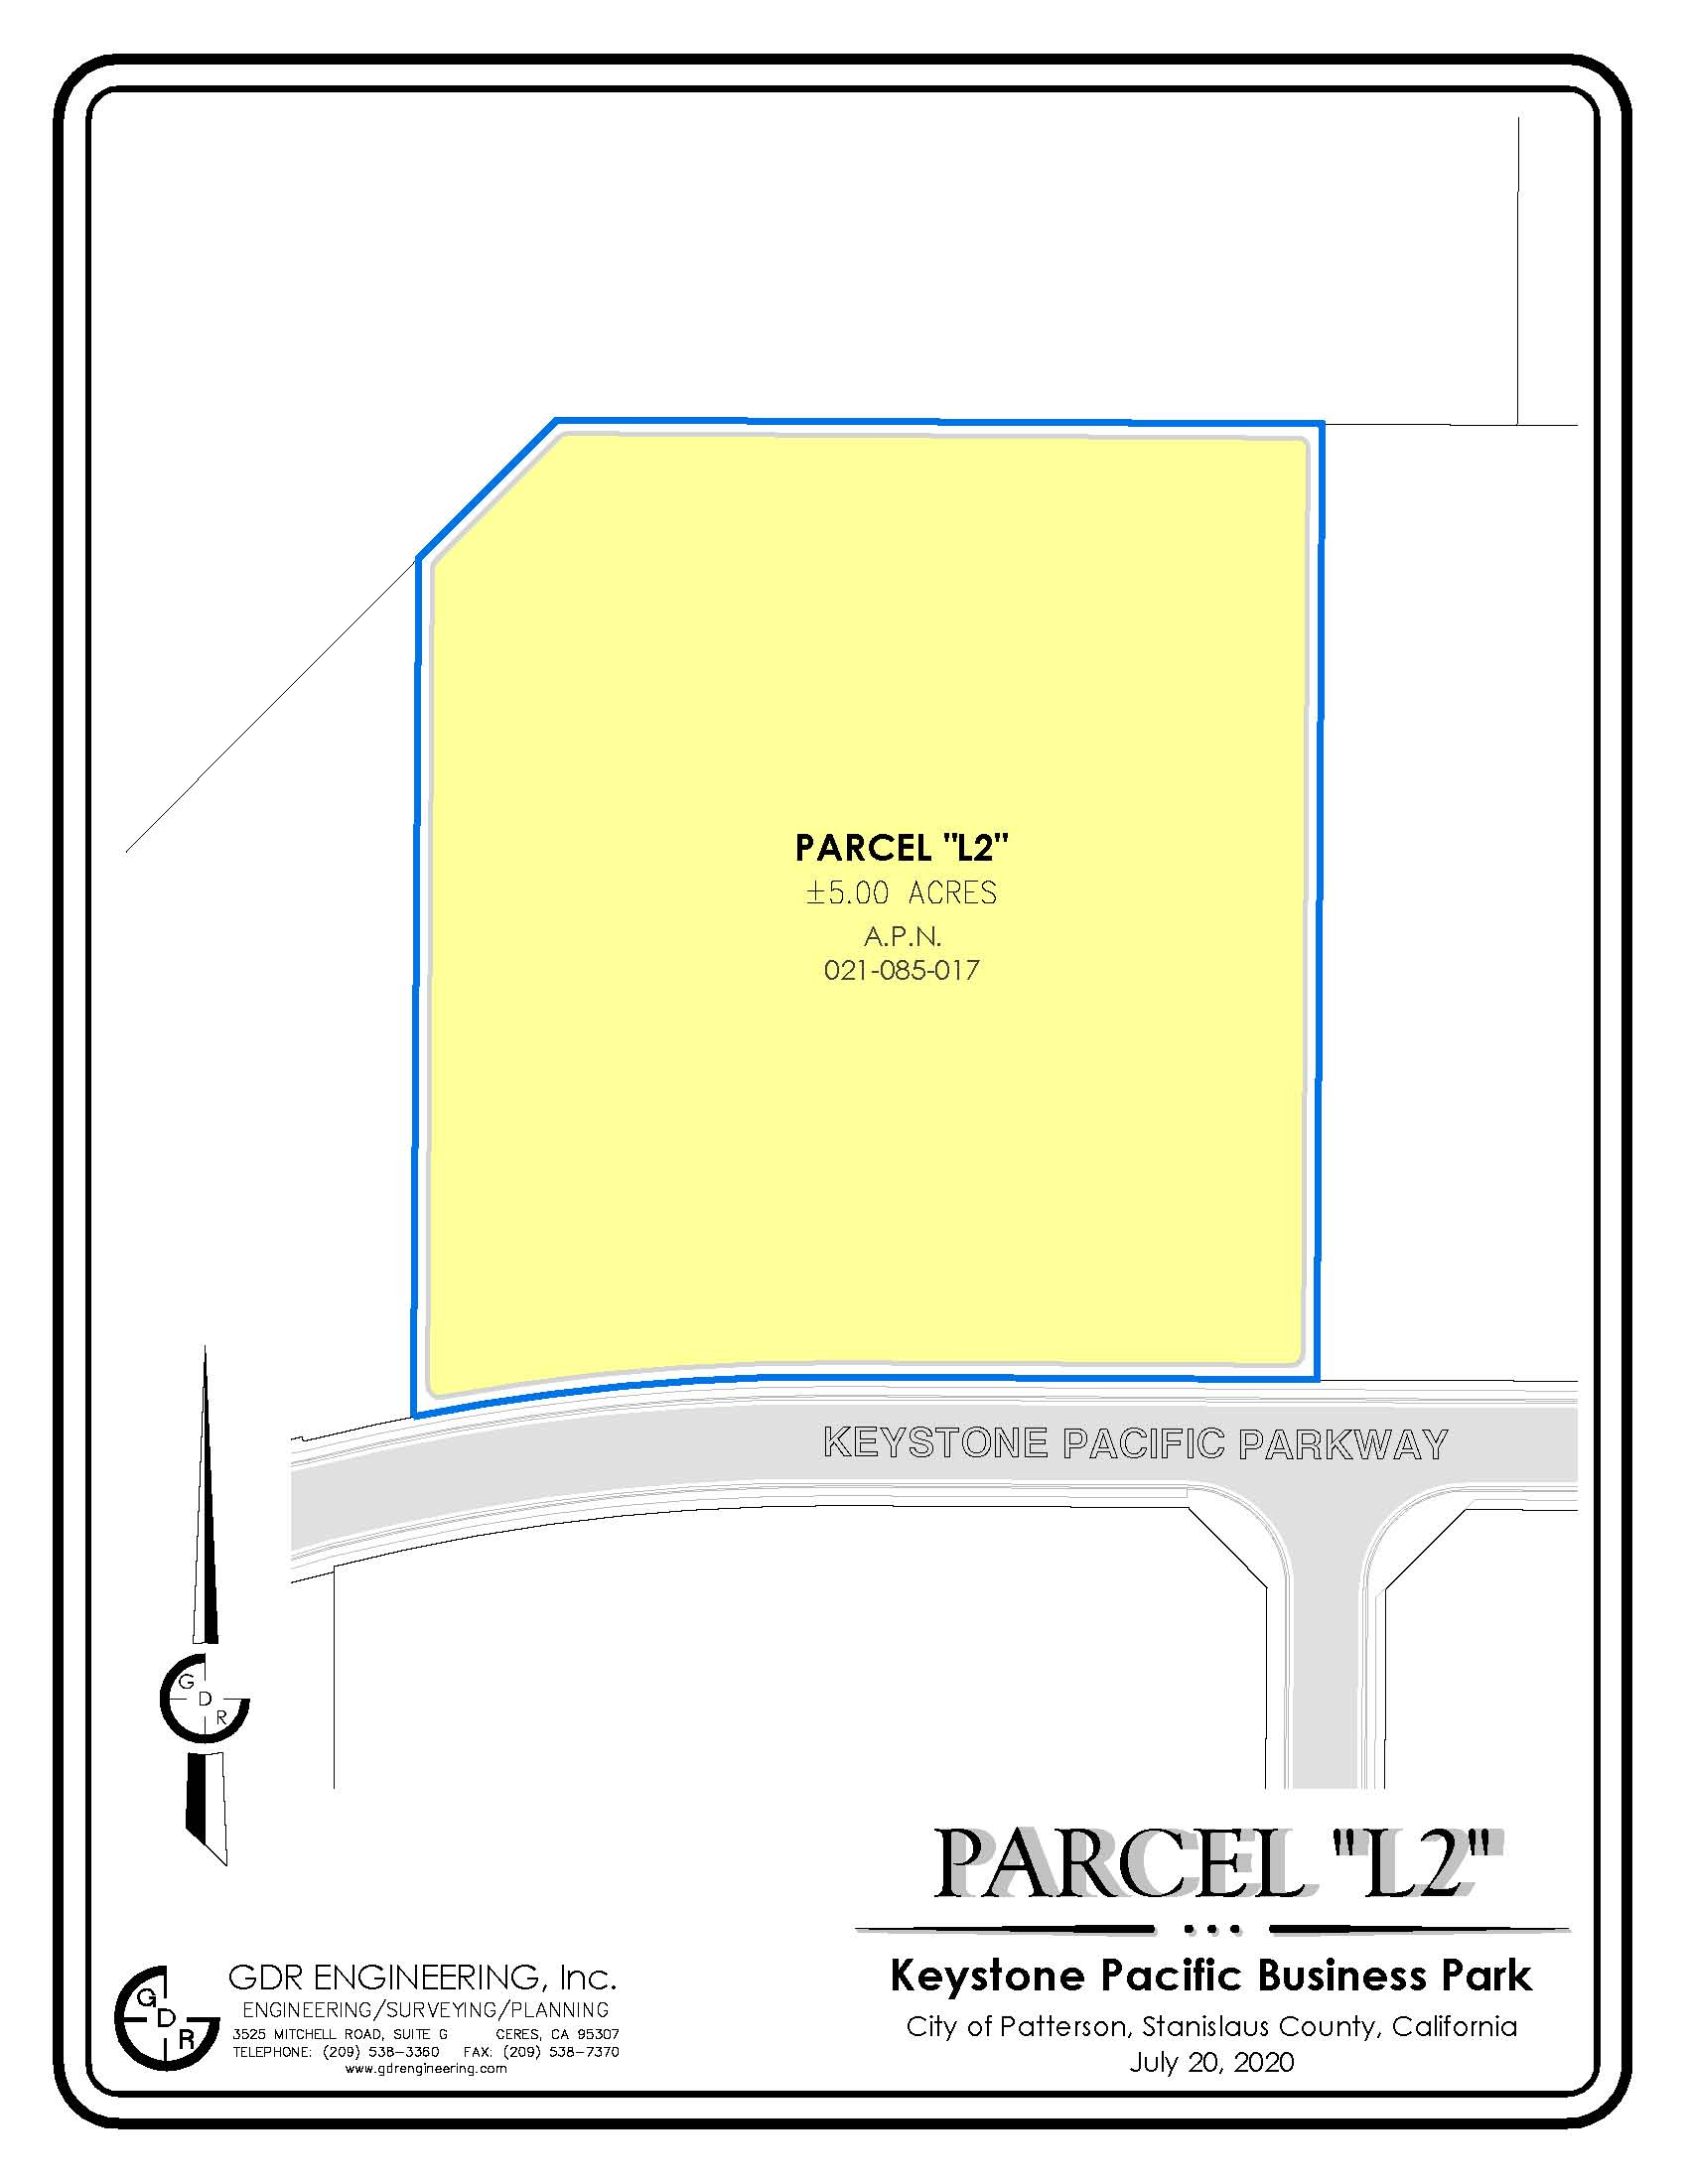 Keystone Pacific Business Park 5 Acre Site Parcel 021-085-017